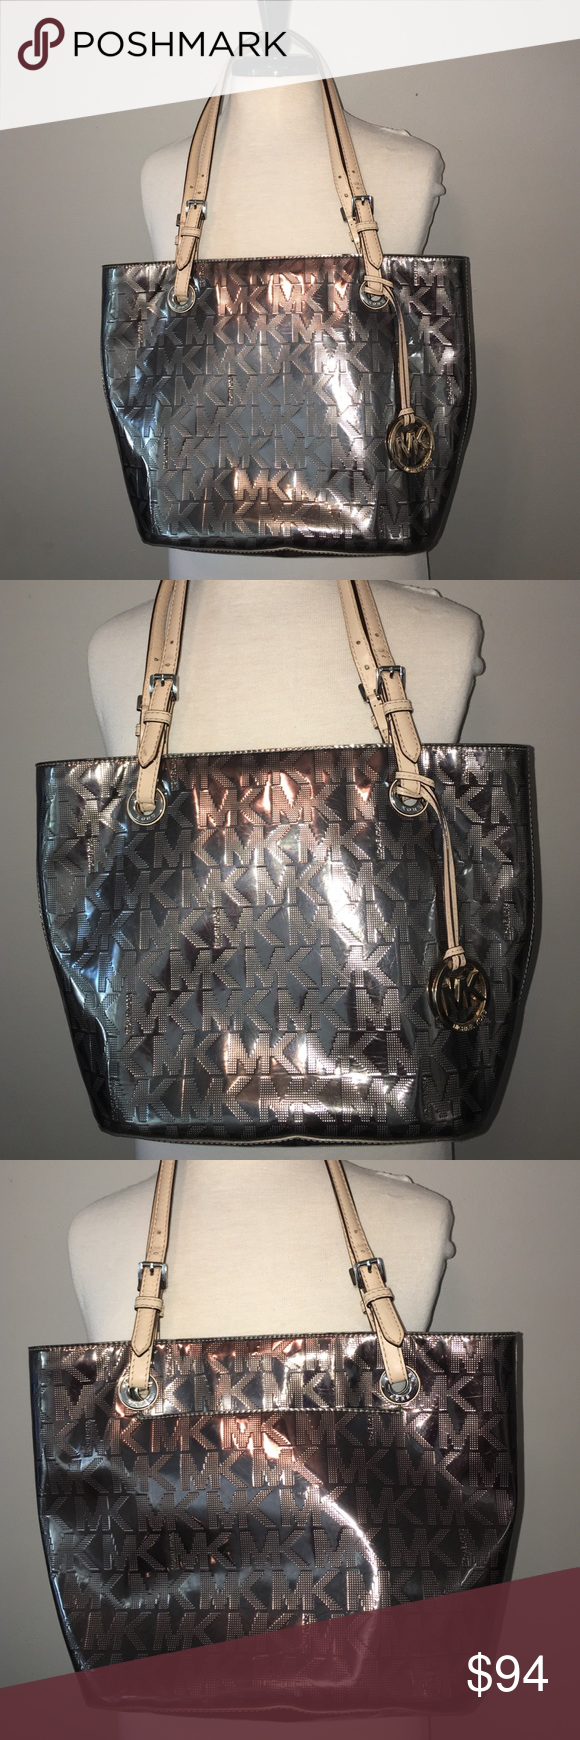 bb82565afcf8 Gorgeous and Gorgeous Michael Kors bag. Gorgeous Michael Kors bag, with  inside code AV